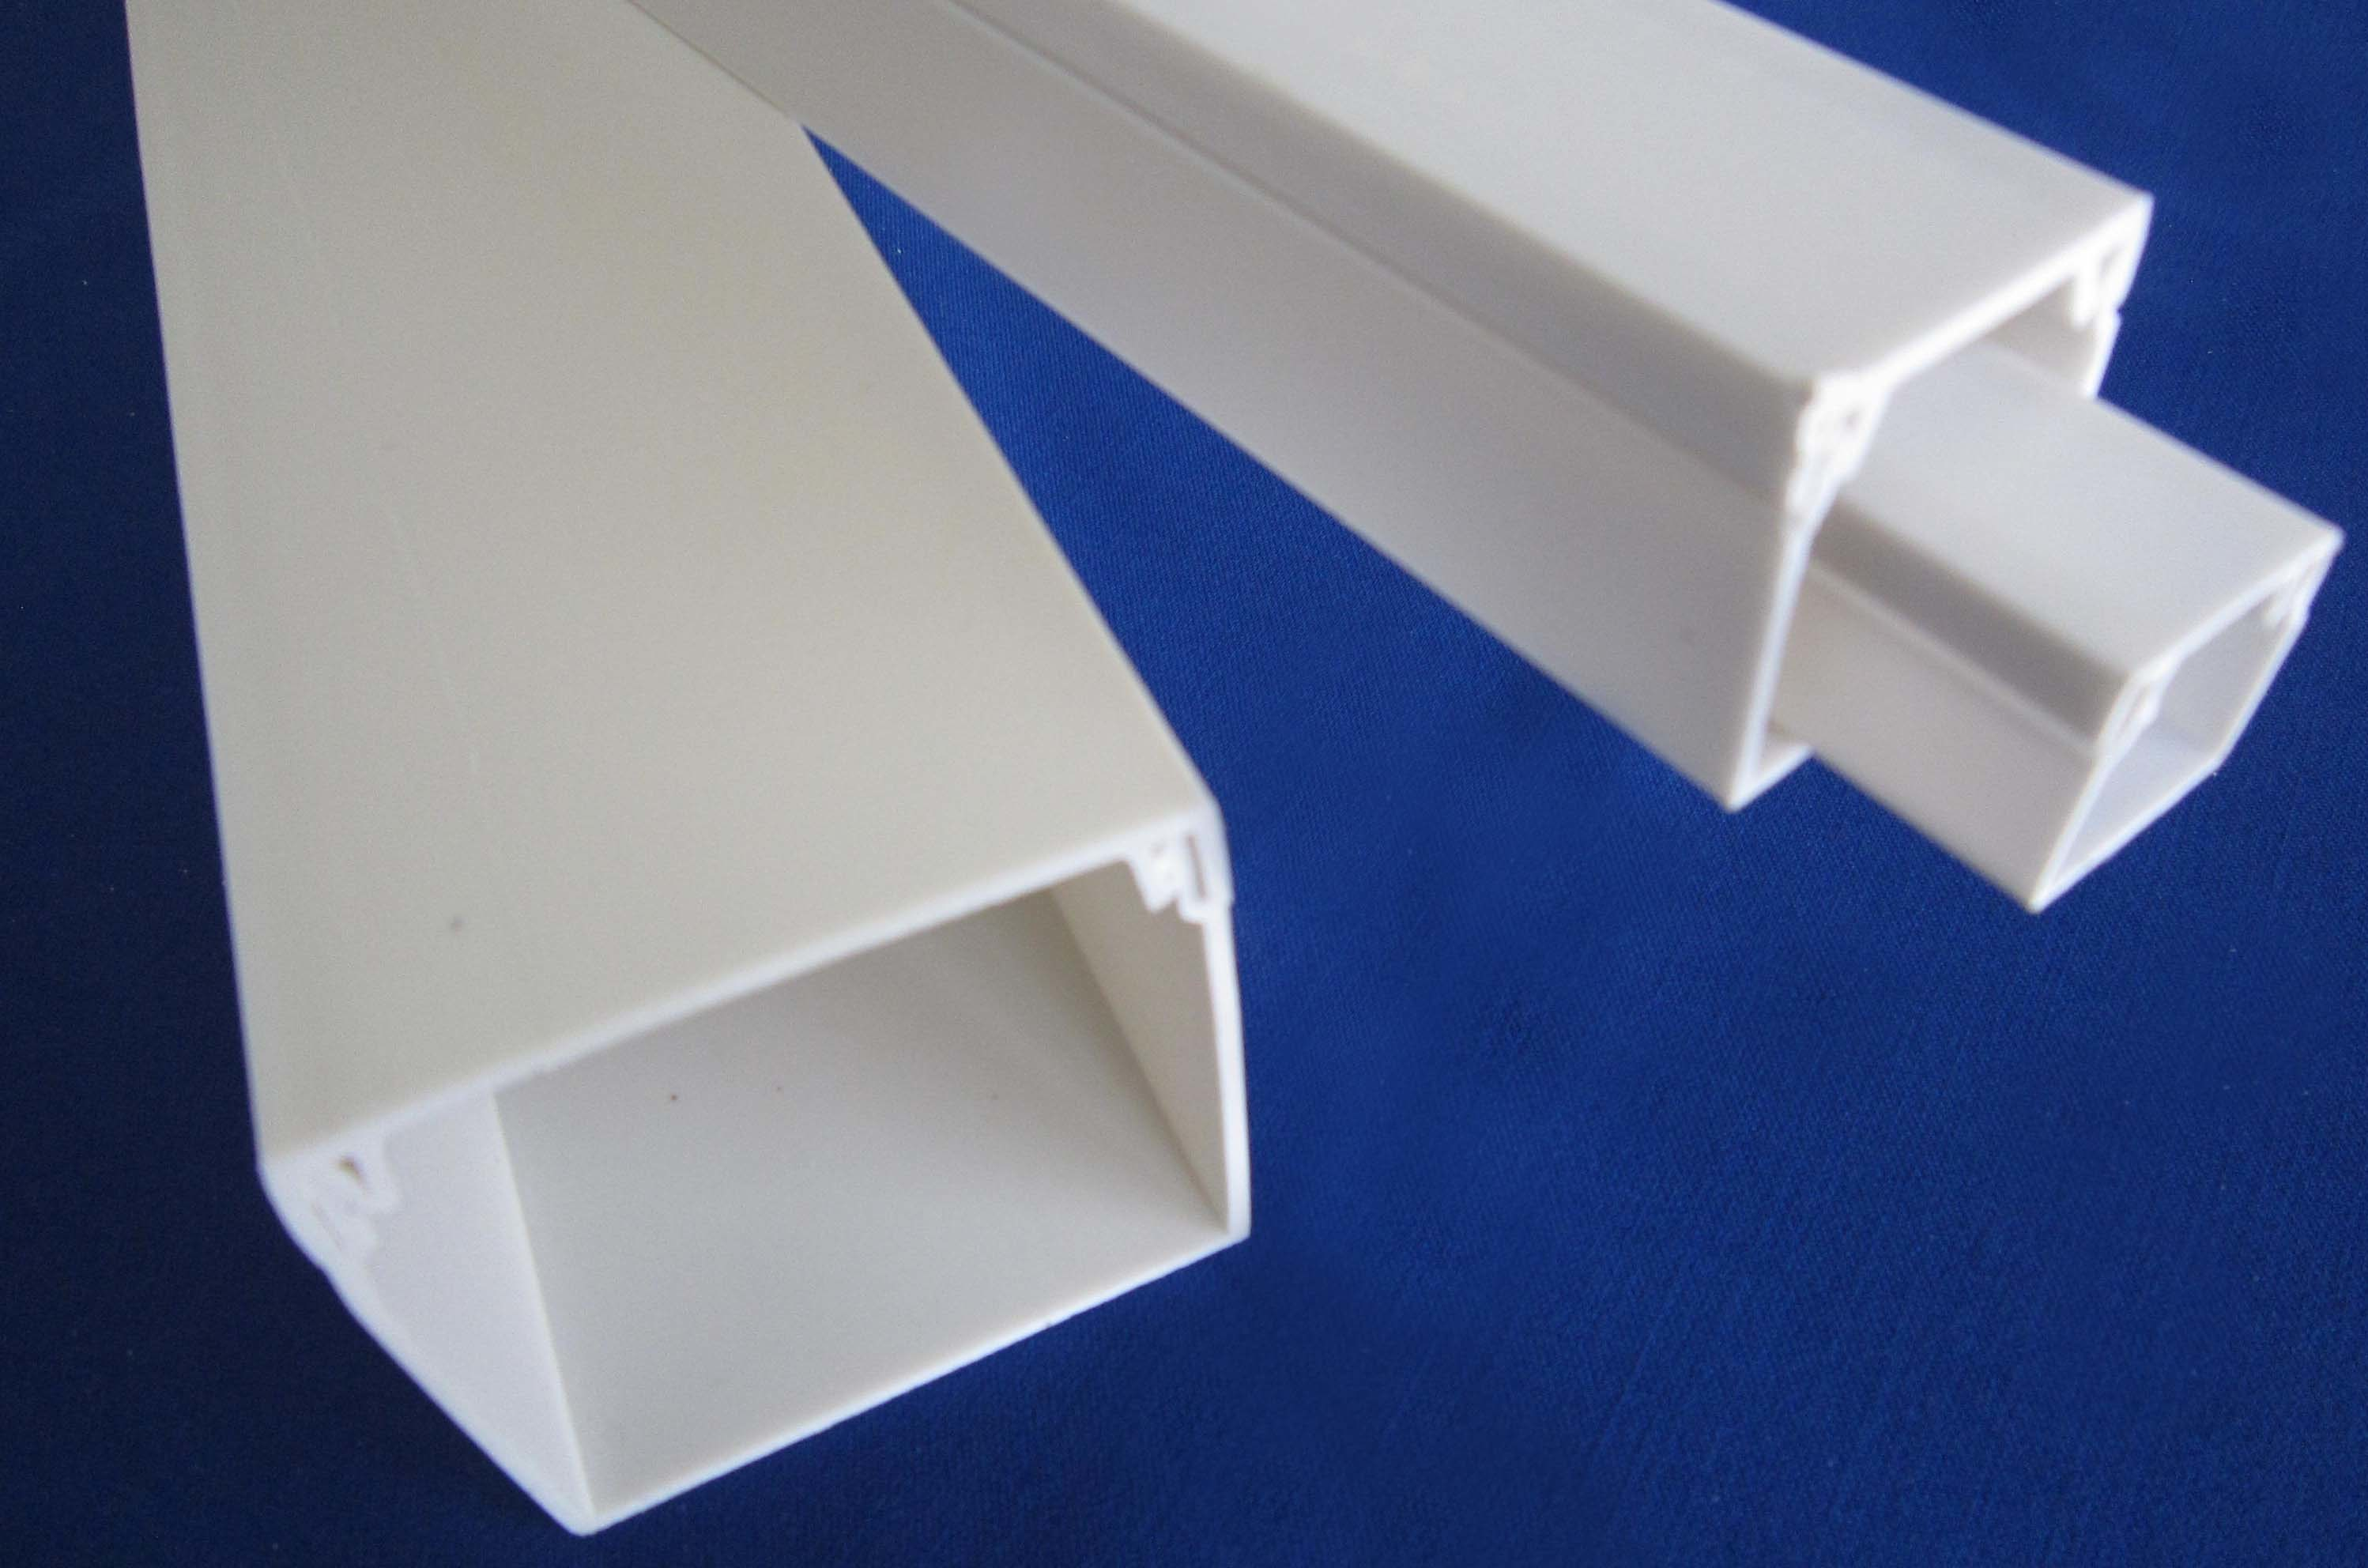 Pvc Cable Tray : Wiring cable tray duct get free image about